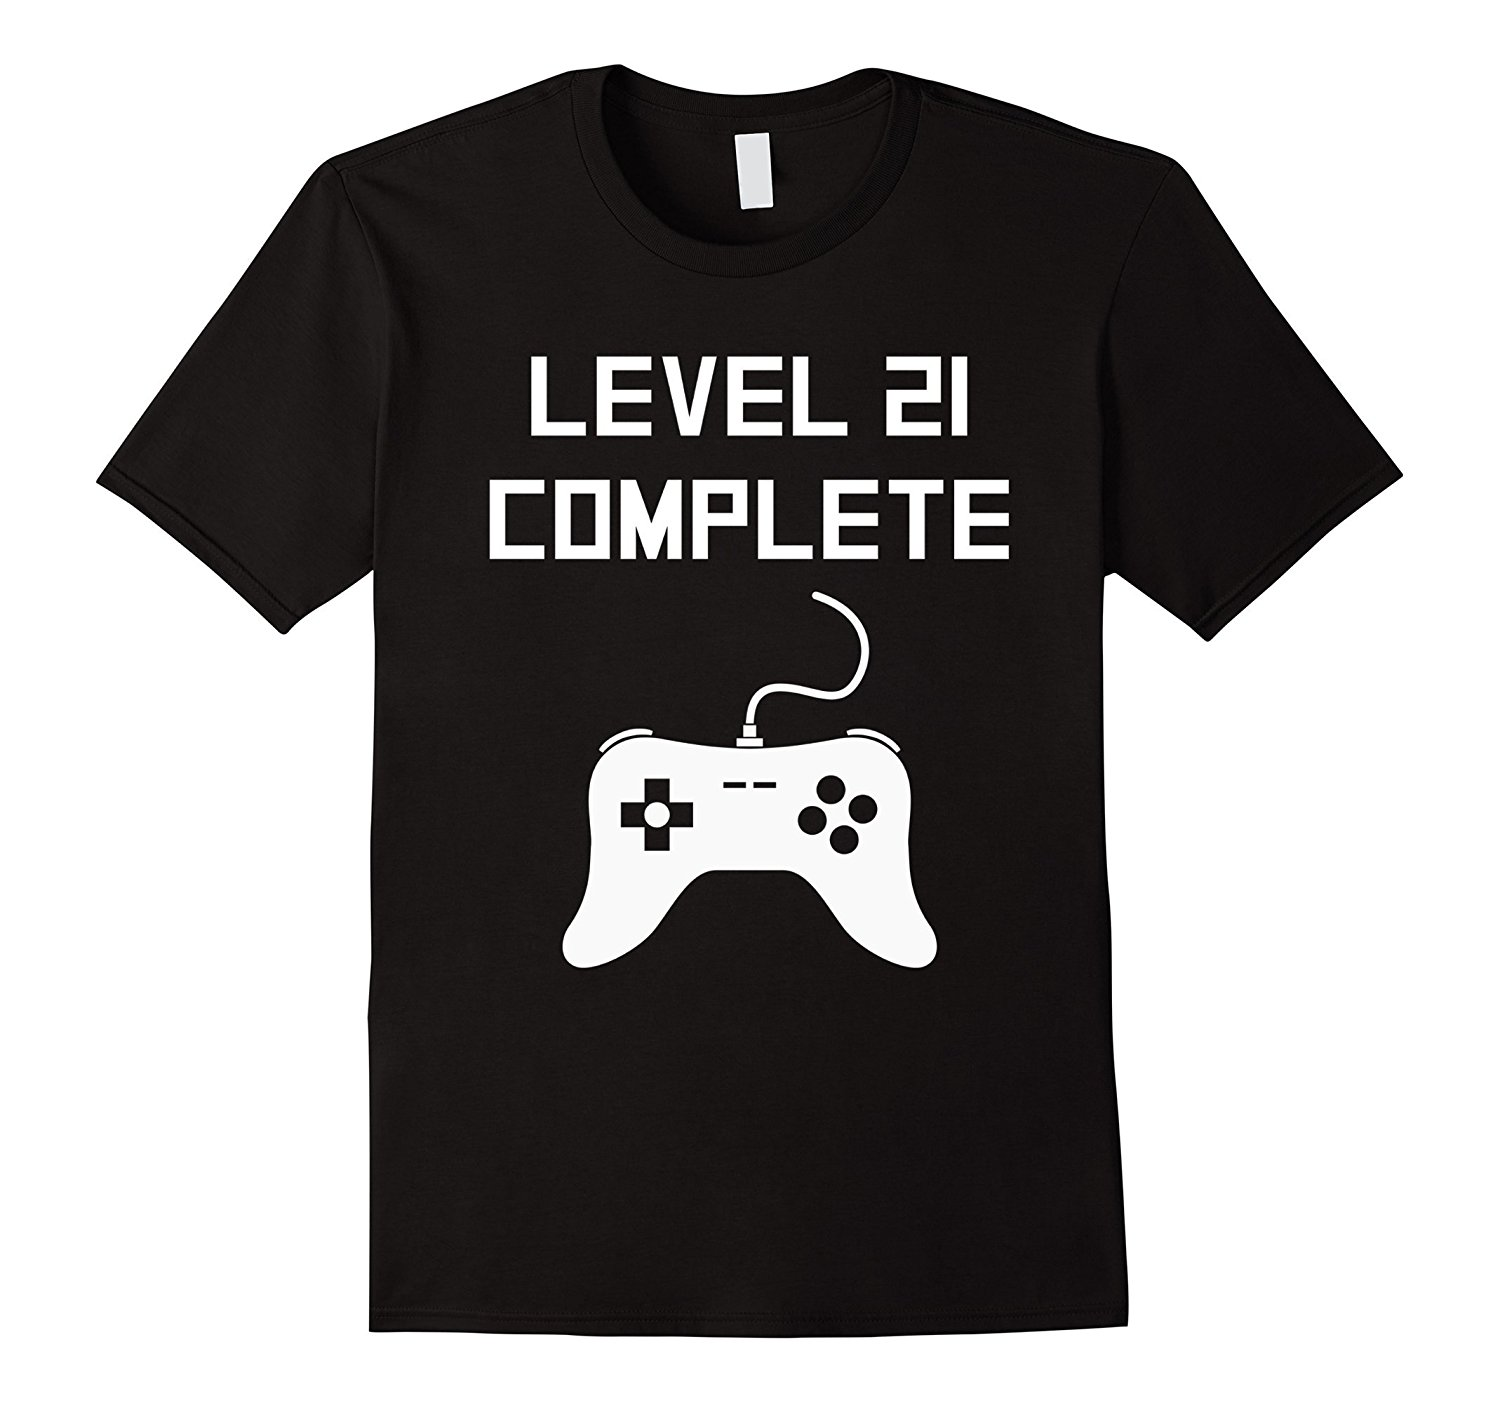 Cotton T Shirts Brand Clothing Tops Tees Level 21 Complete Funny Video Games T-Shirt letter men tees Slim cotton Tops